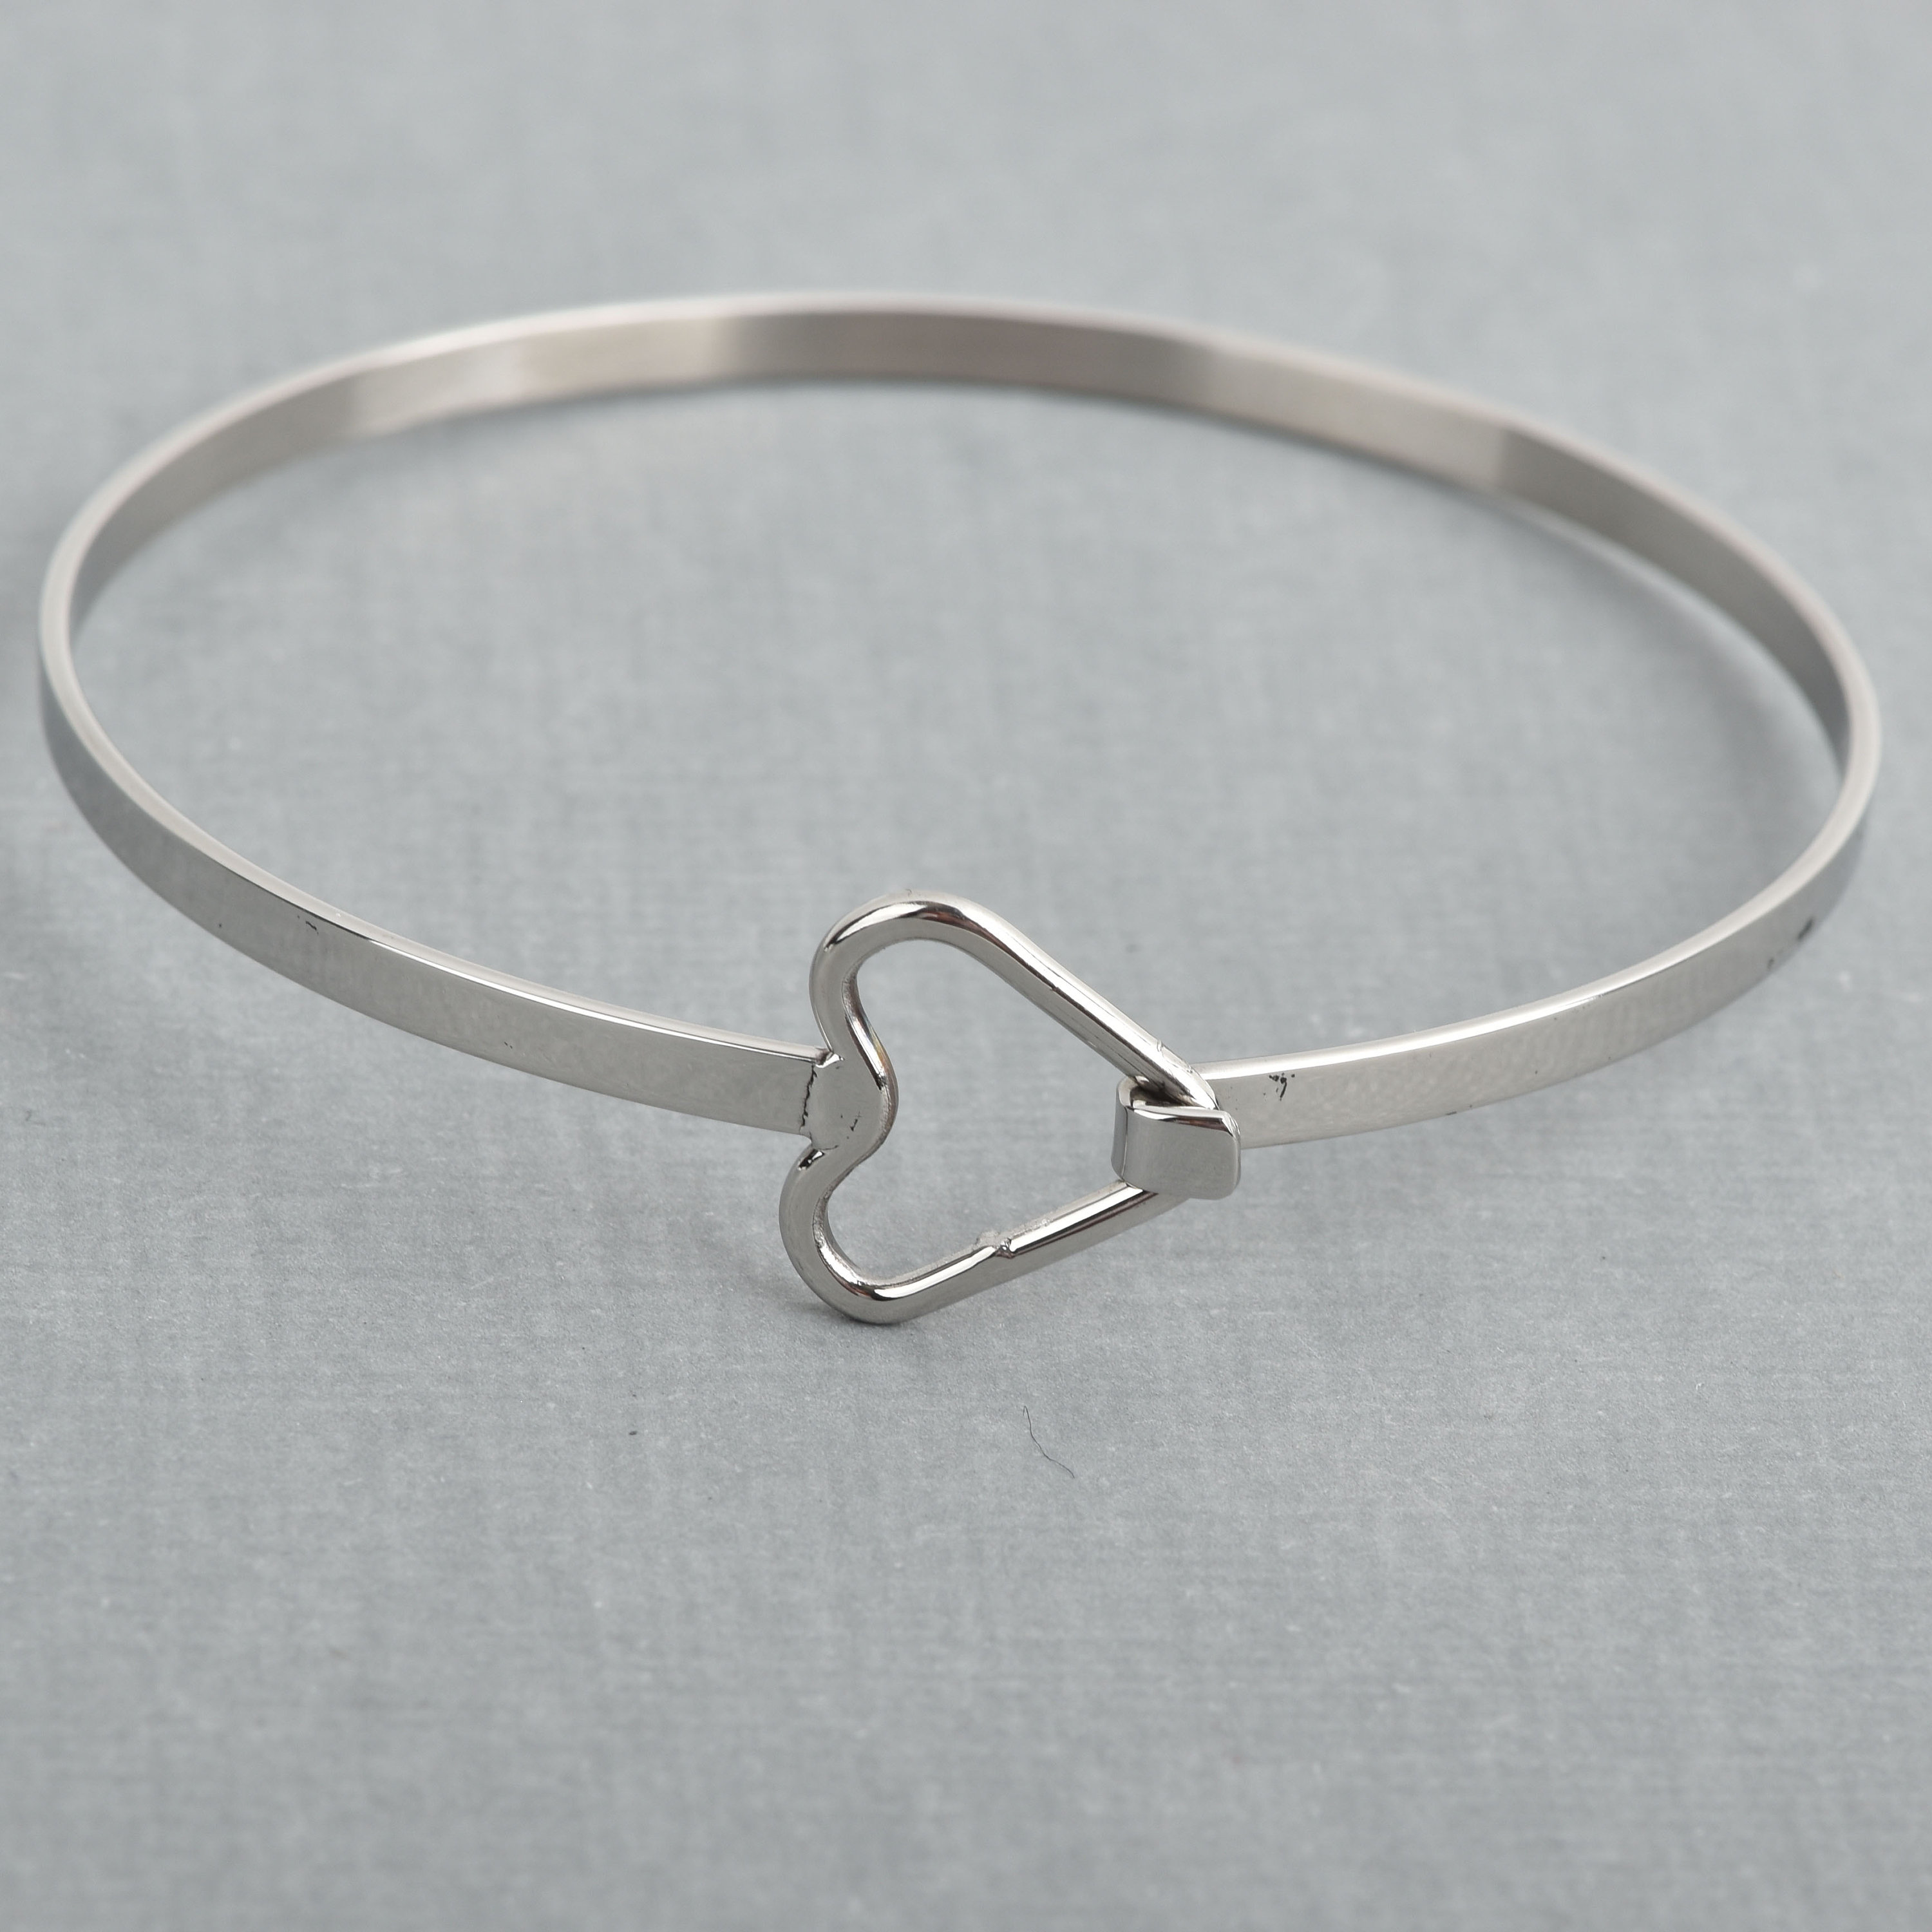 bangle and jewelry stainless steel engraved kd charm bunny eg name bangles bracelets heart